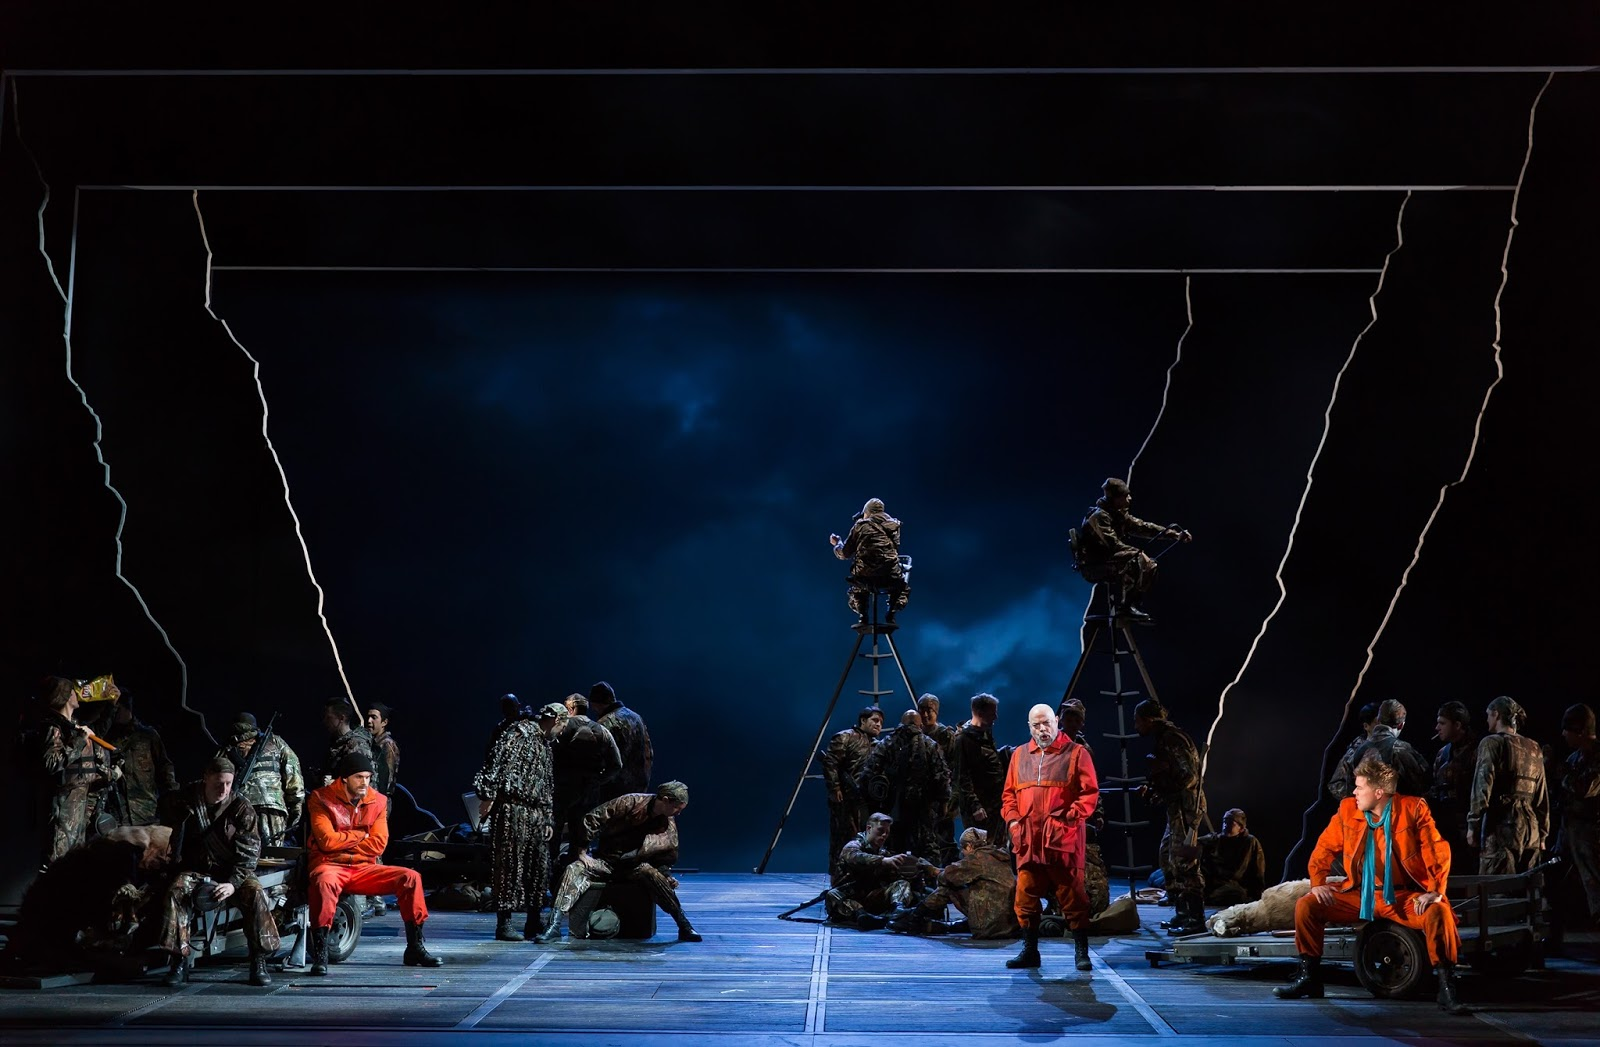 IN PERFORMANCE: a scene from FRANCESCA ZAMBELLO's production of Richard Wagner's GÖTTERDÄMMERUNG at Washington National Opera, May 2016 [Photo by Scott Suchman, © by Washington National Opera]